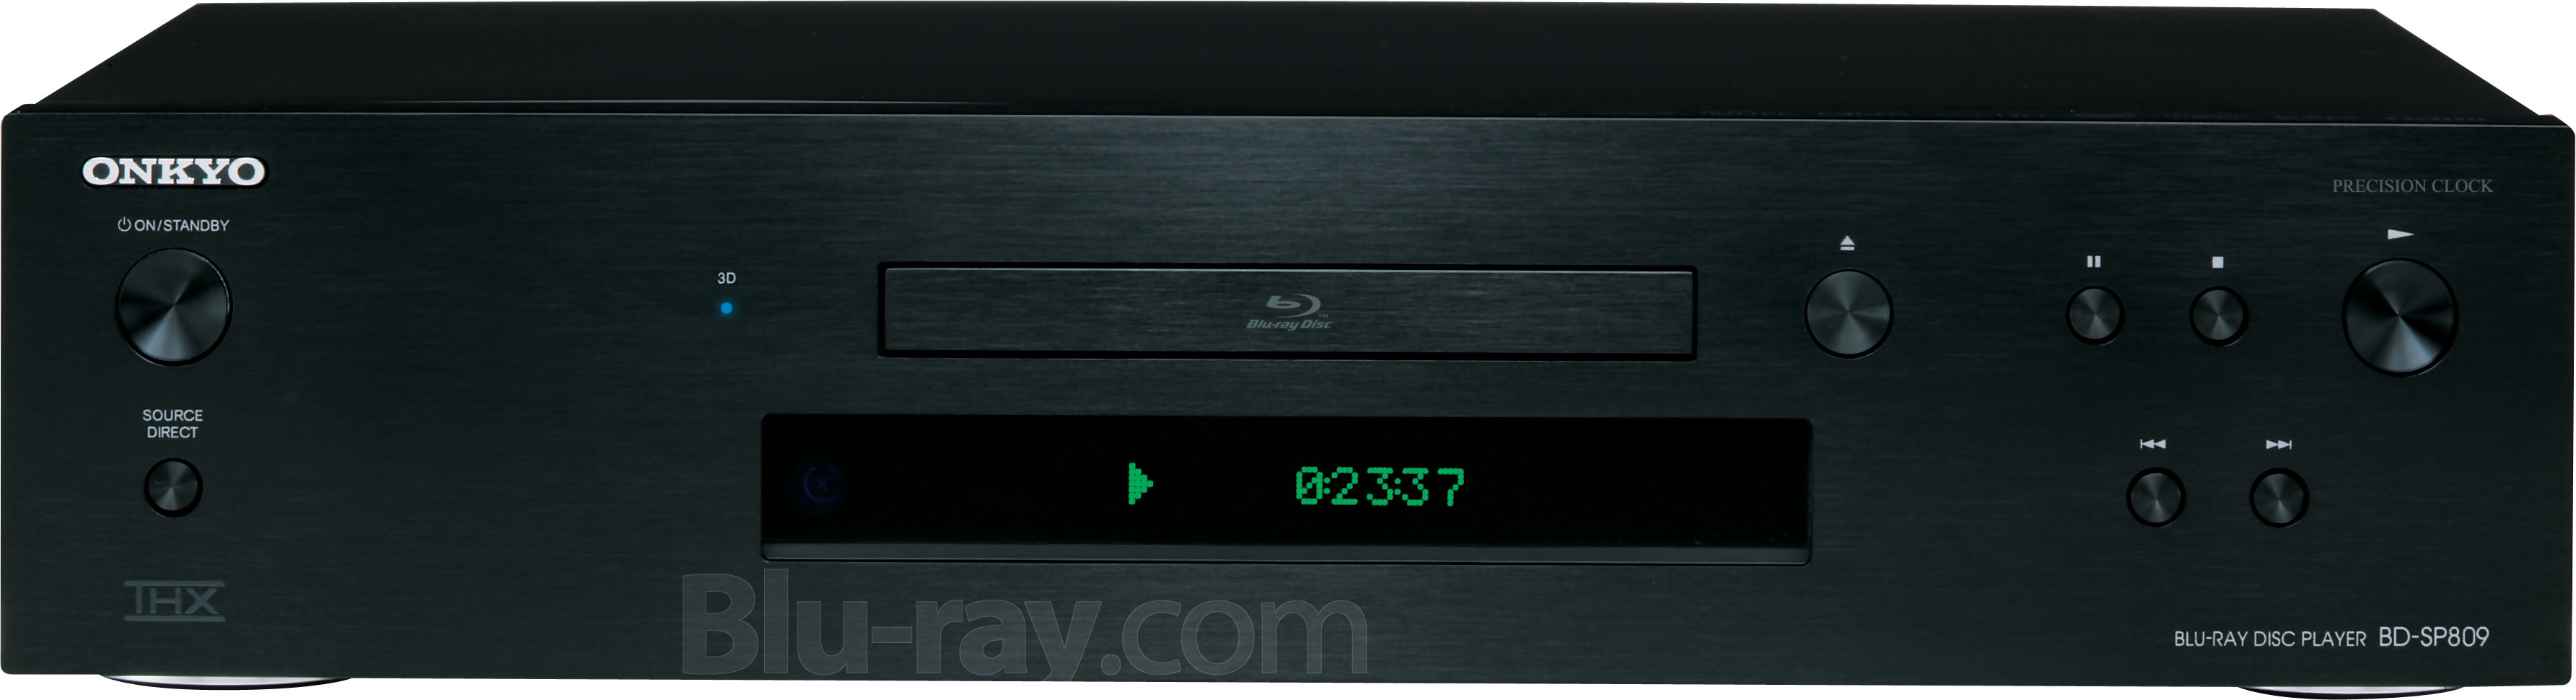 Onkyo Introduces THX Certified 3D Blu-ray Disc Player with extensive